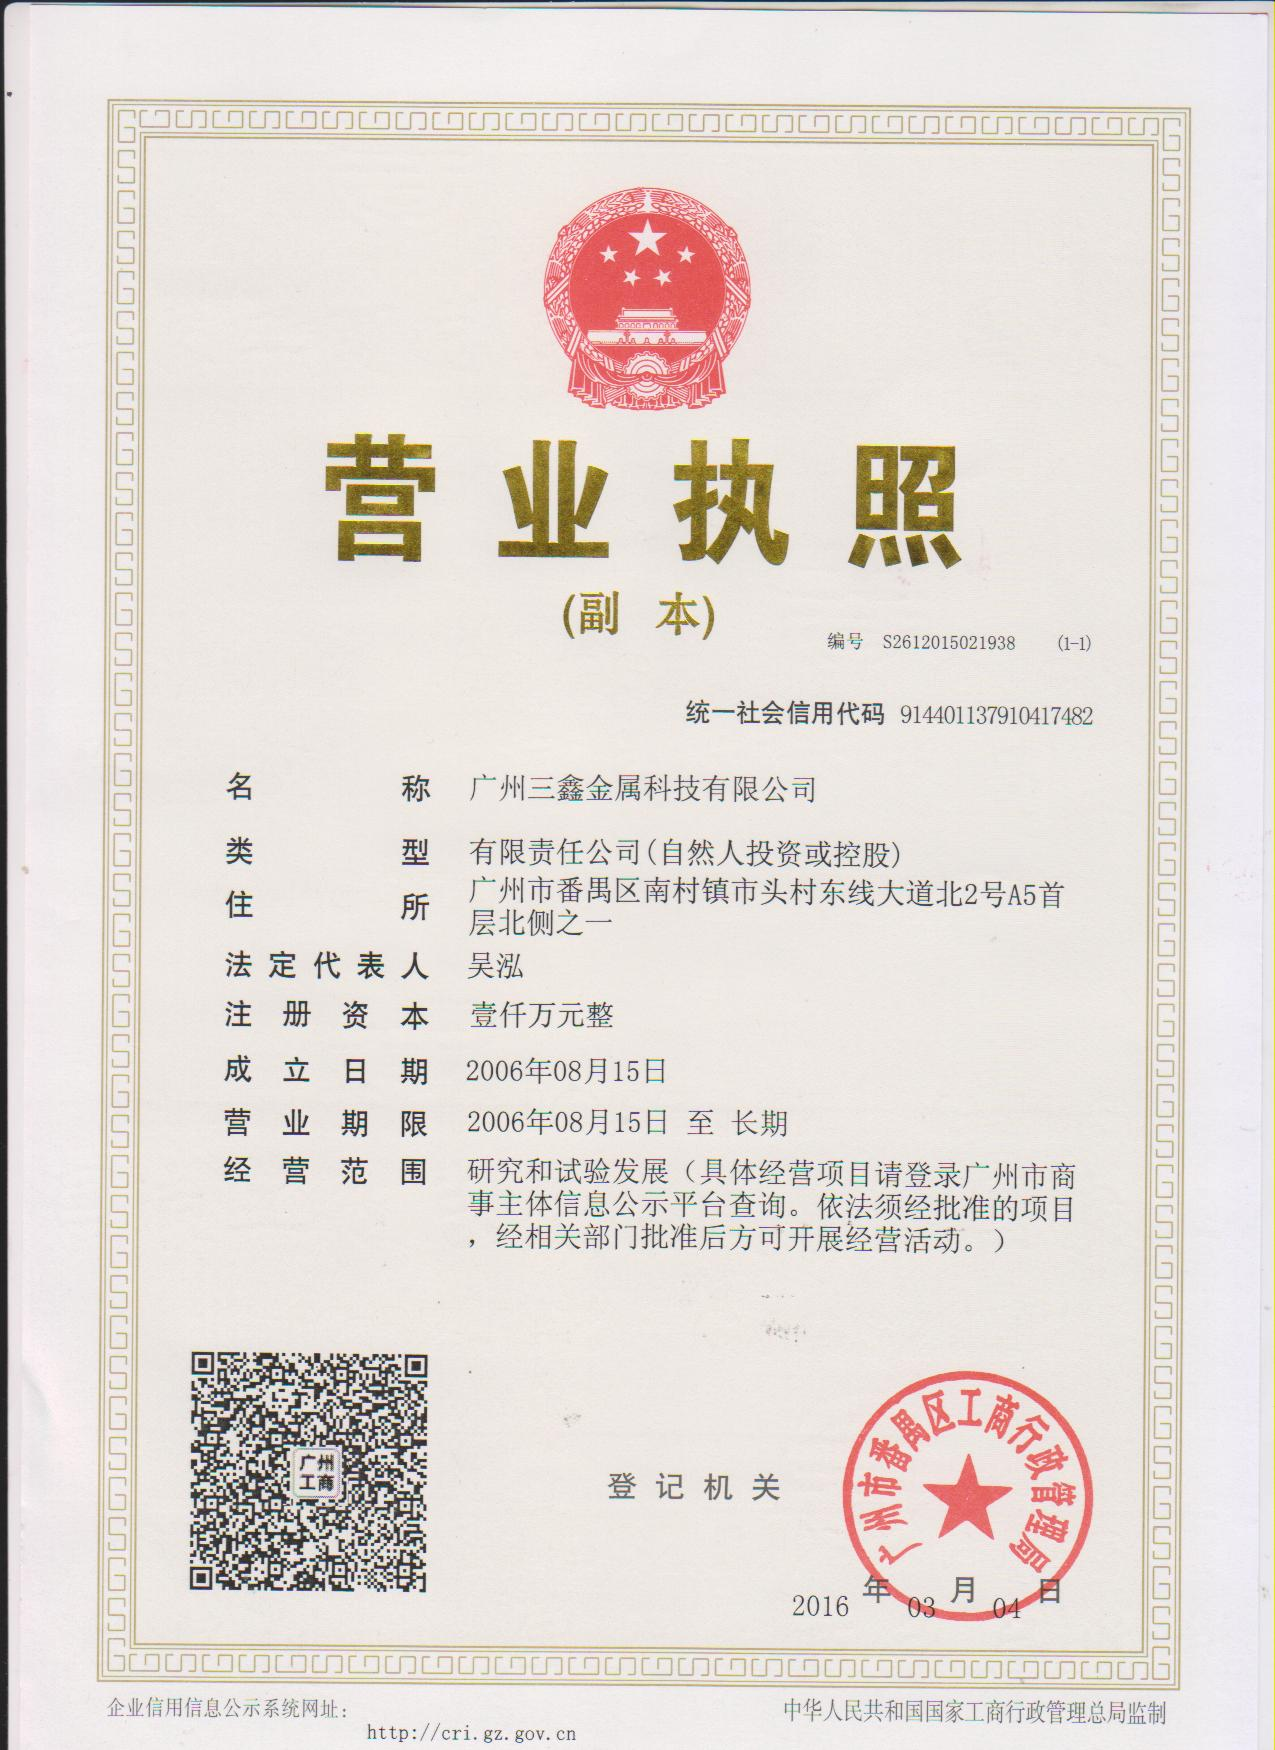 business licence of Guangzhou Sanxin Metal S&T Co.,Ltd.